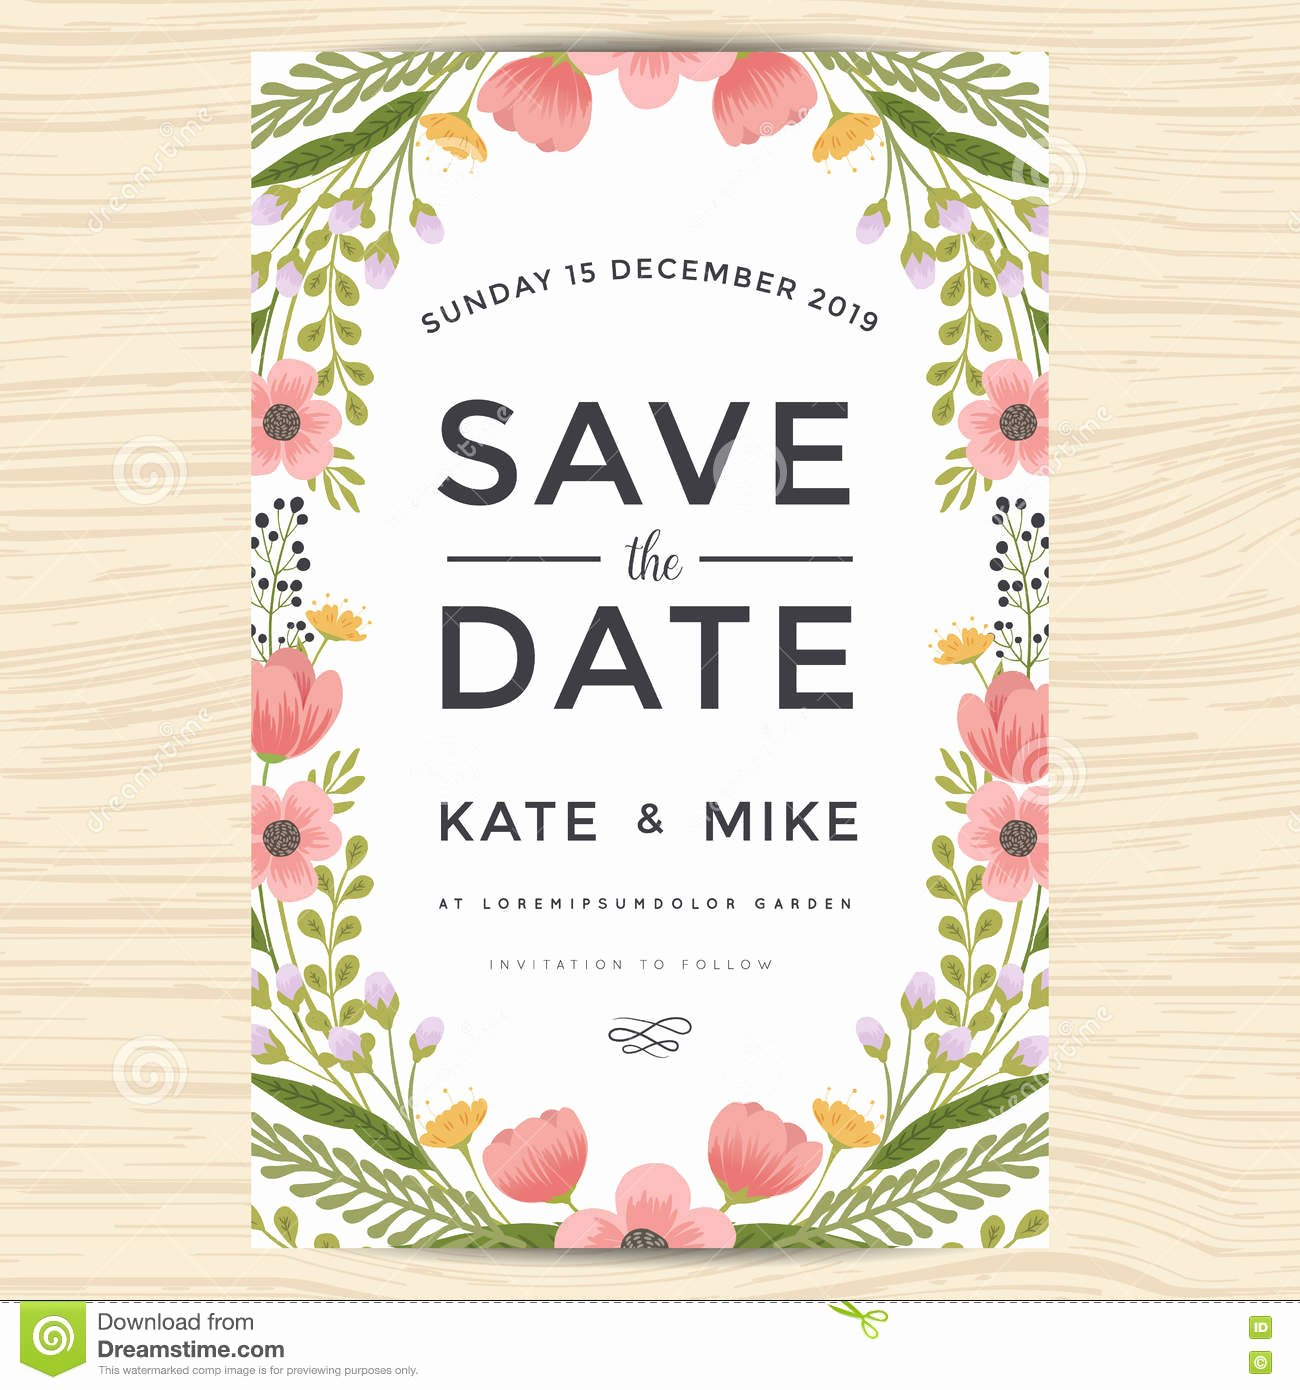 Save the Date Wedding Invitation Card Template with Hand